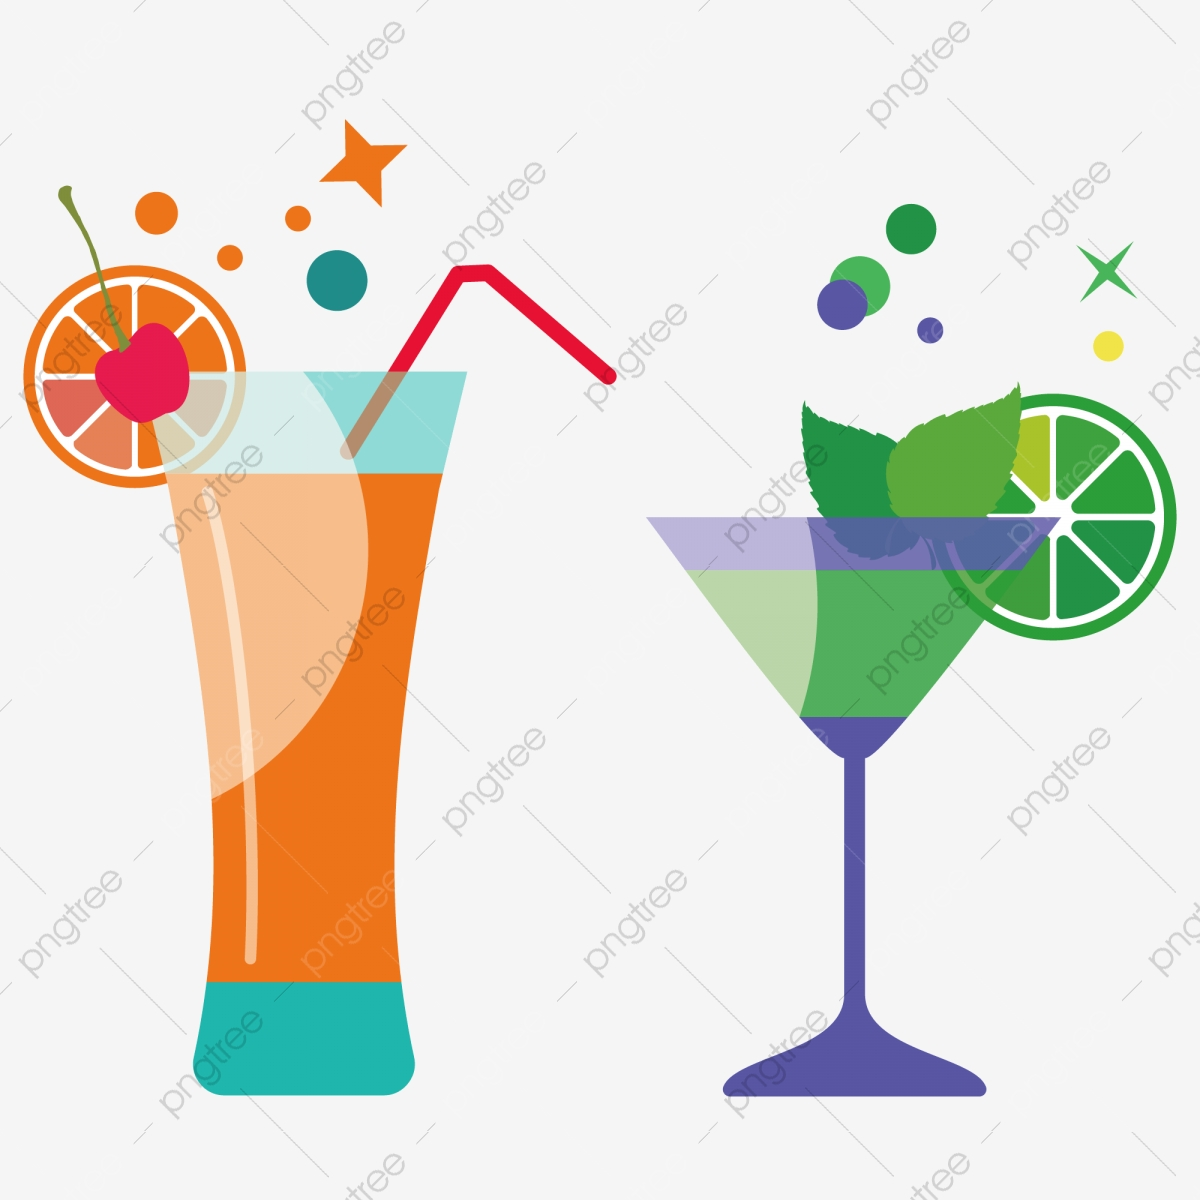 Juice Drinks, Cup, Drinks, Cold Drink PNG Transparent Clipart Image.